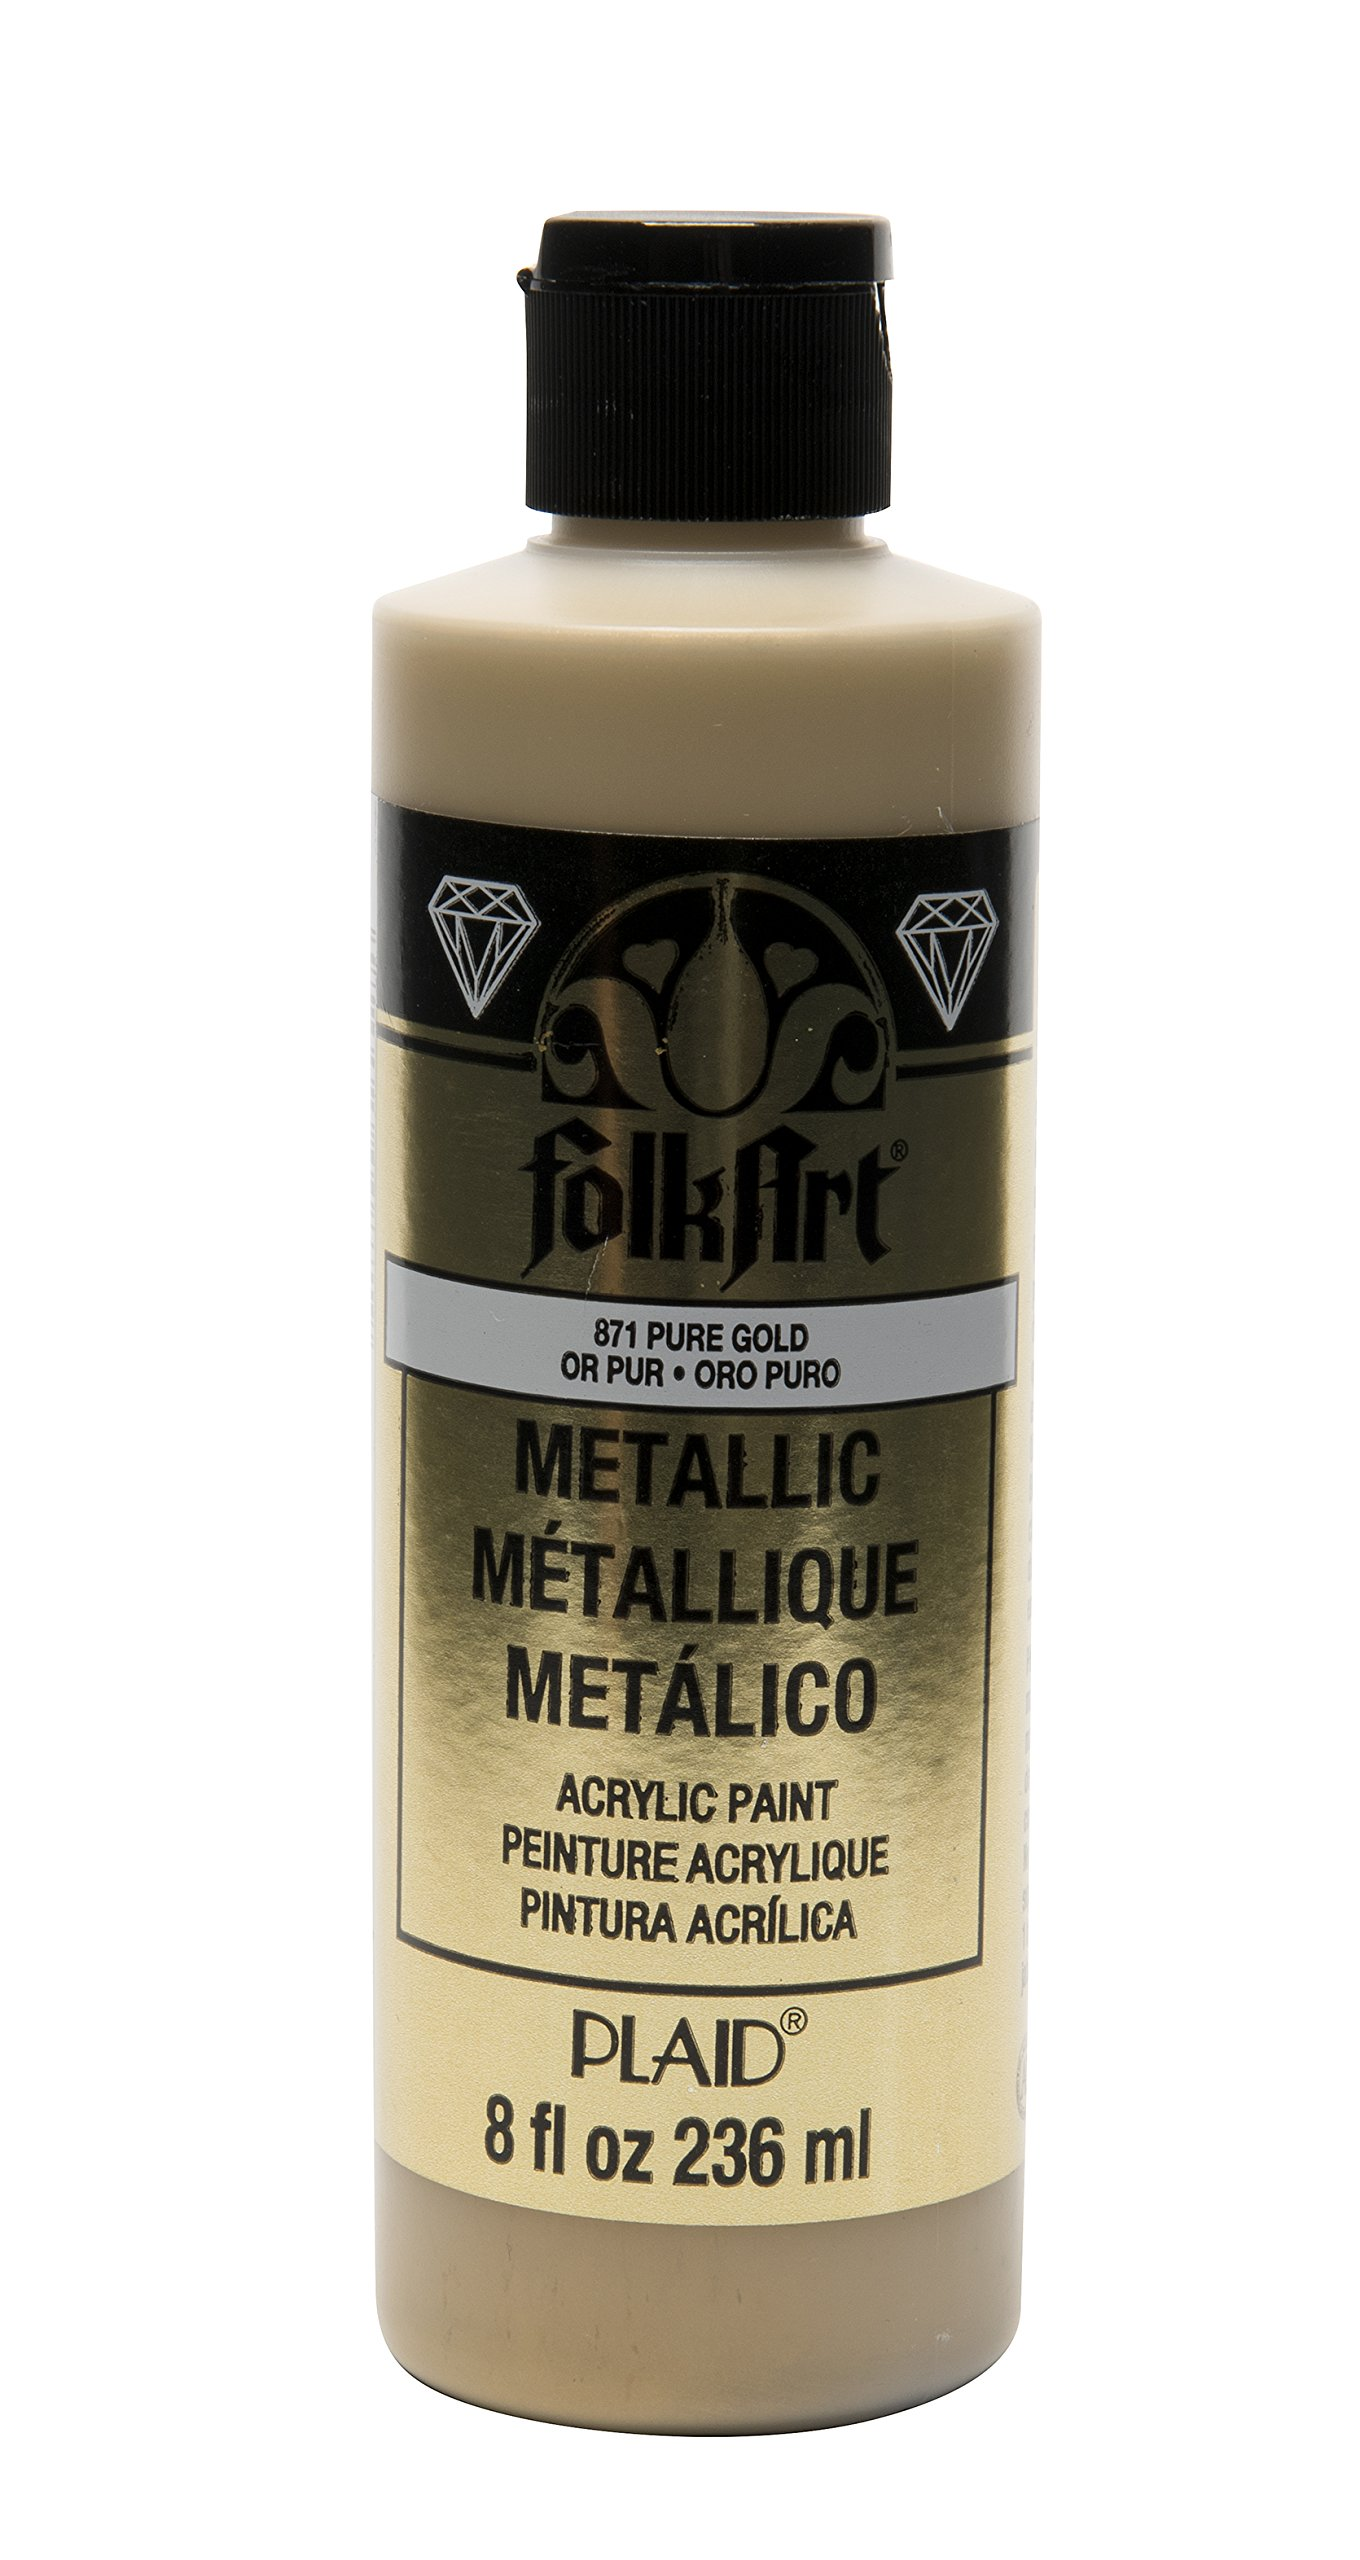 FolkArt Acrylic Paint in Assorted Colors (8 oz), J871, Pure Gold